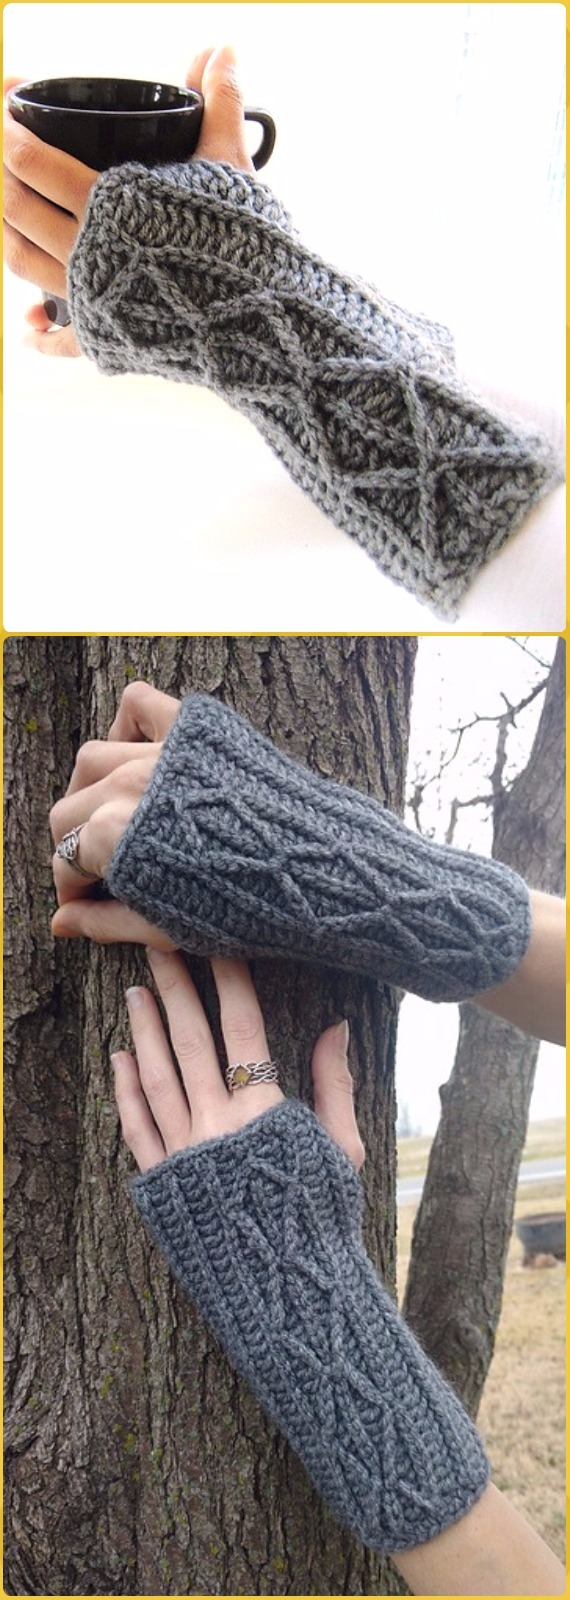 Crochet Faux Cable Adeline Fingerless Mitts or Arm Warmers Free Pattern - Crochet Arm Warmer Free Patterns